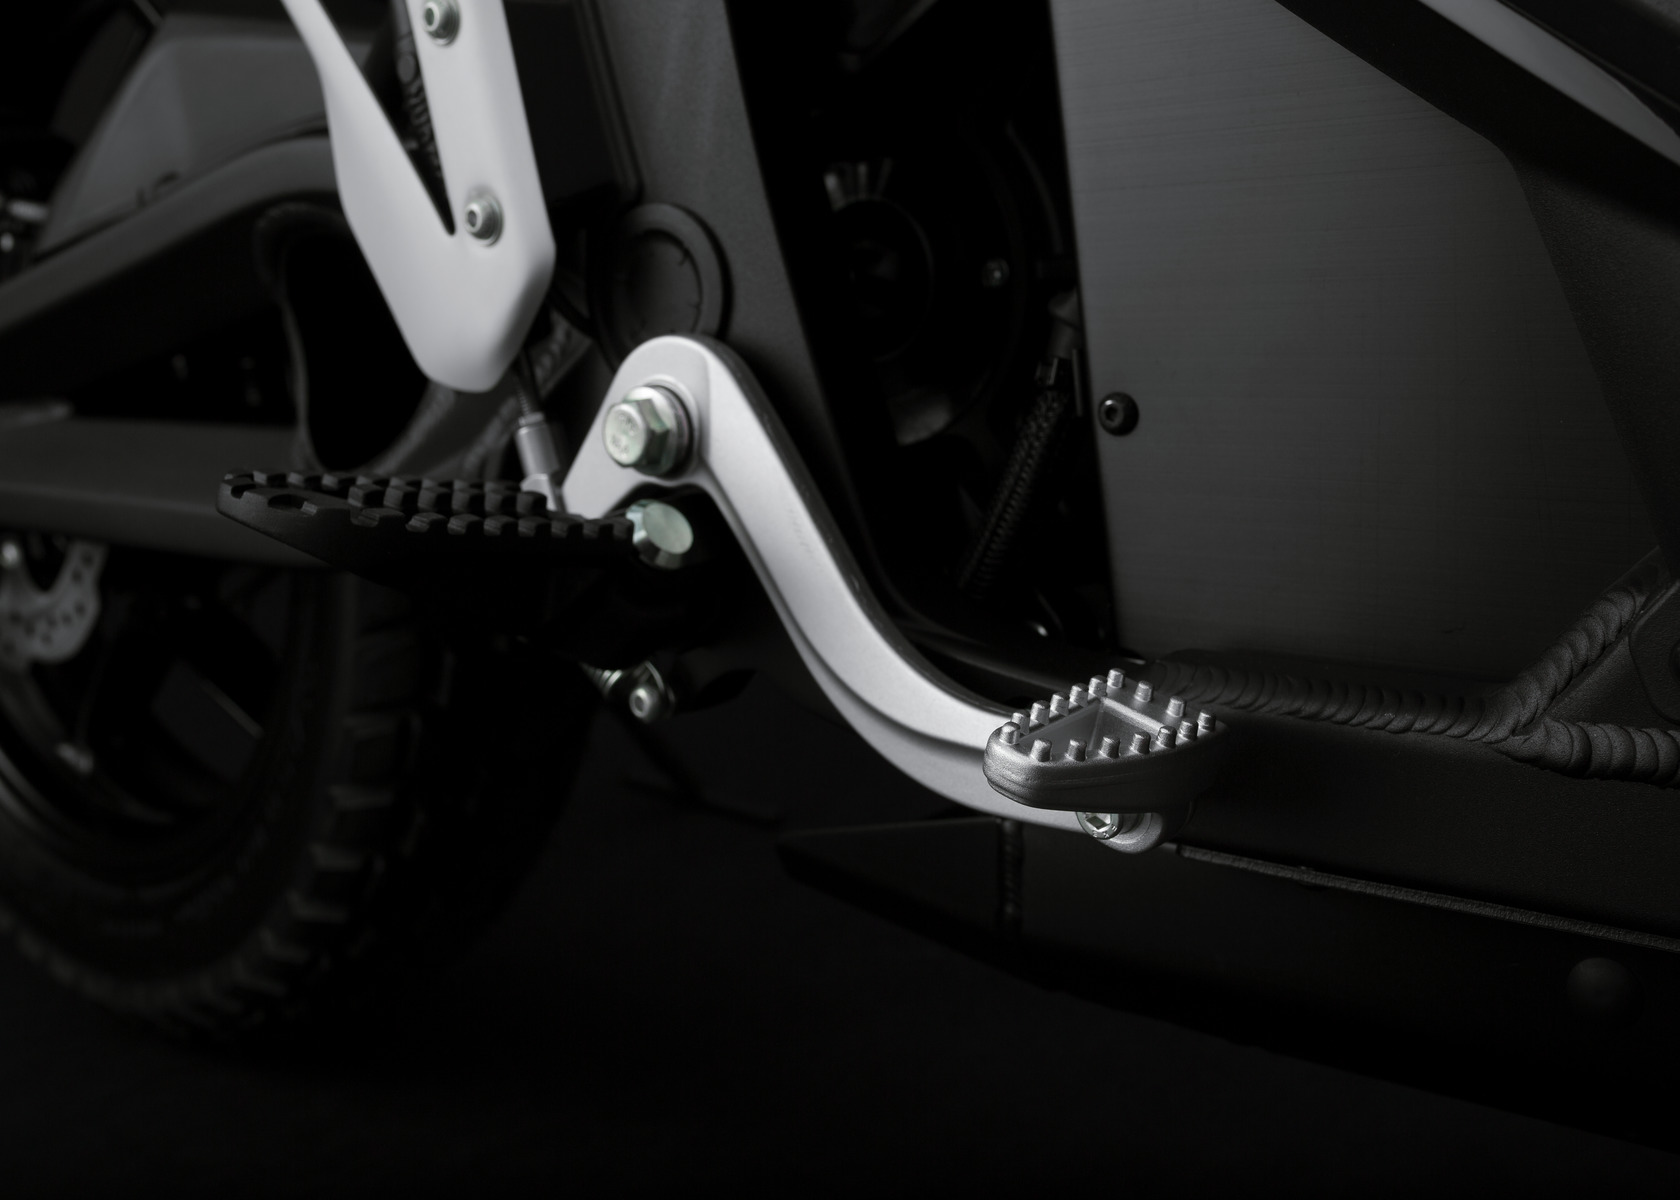 2016 Zero DSR Electric Motorcycle: Brake Pedal